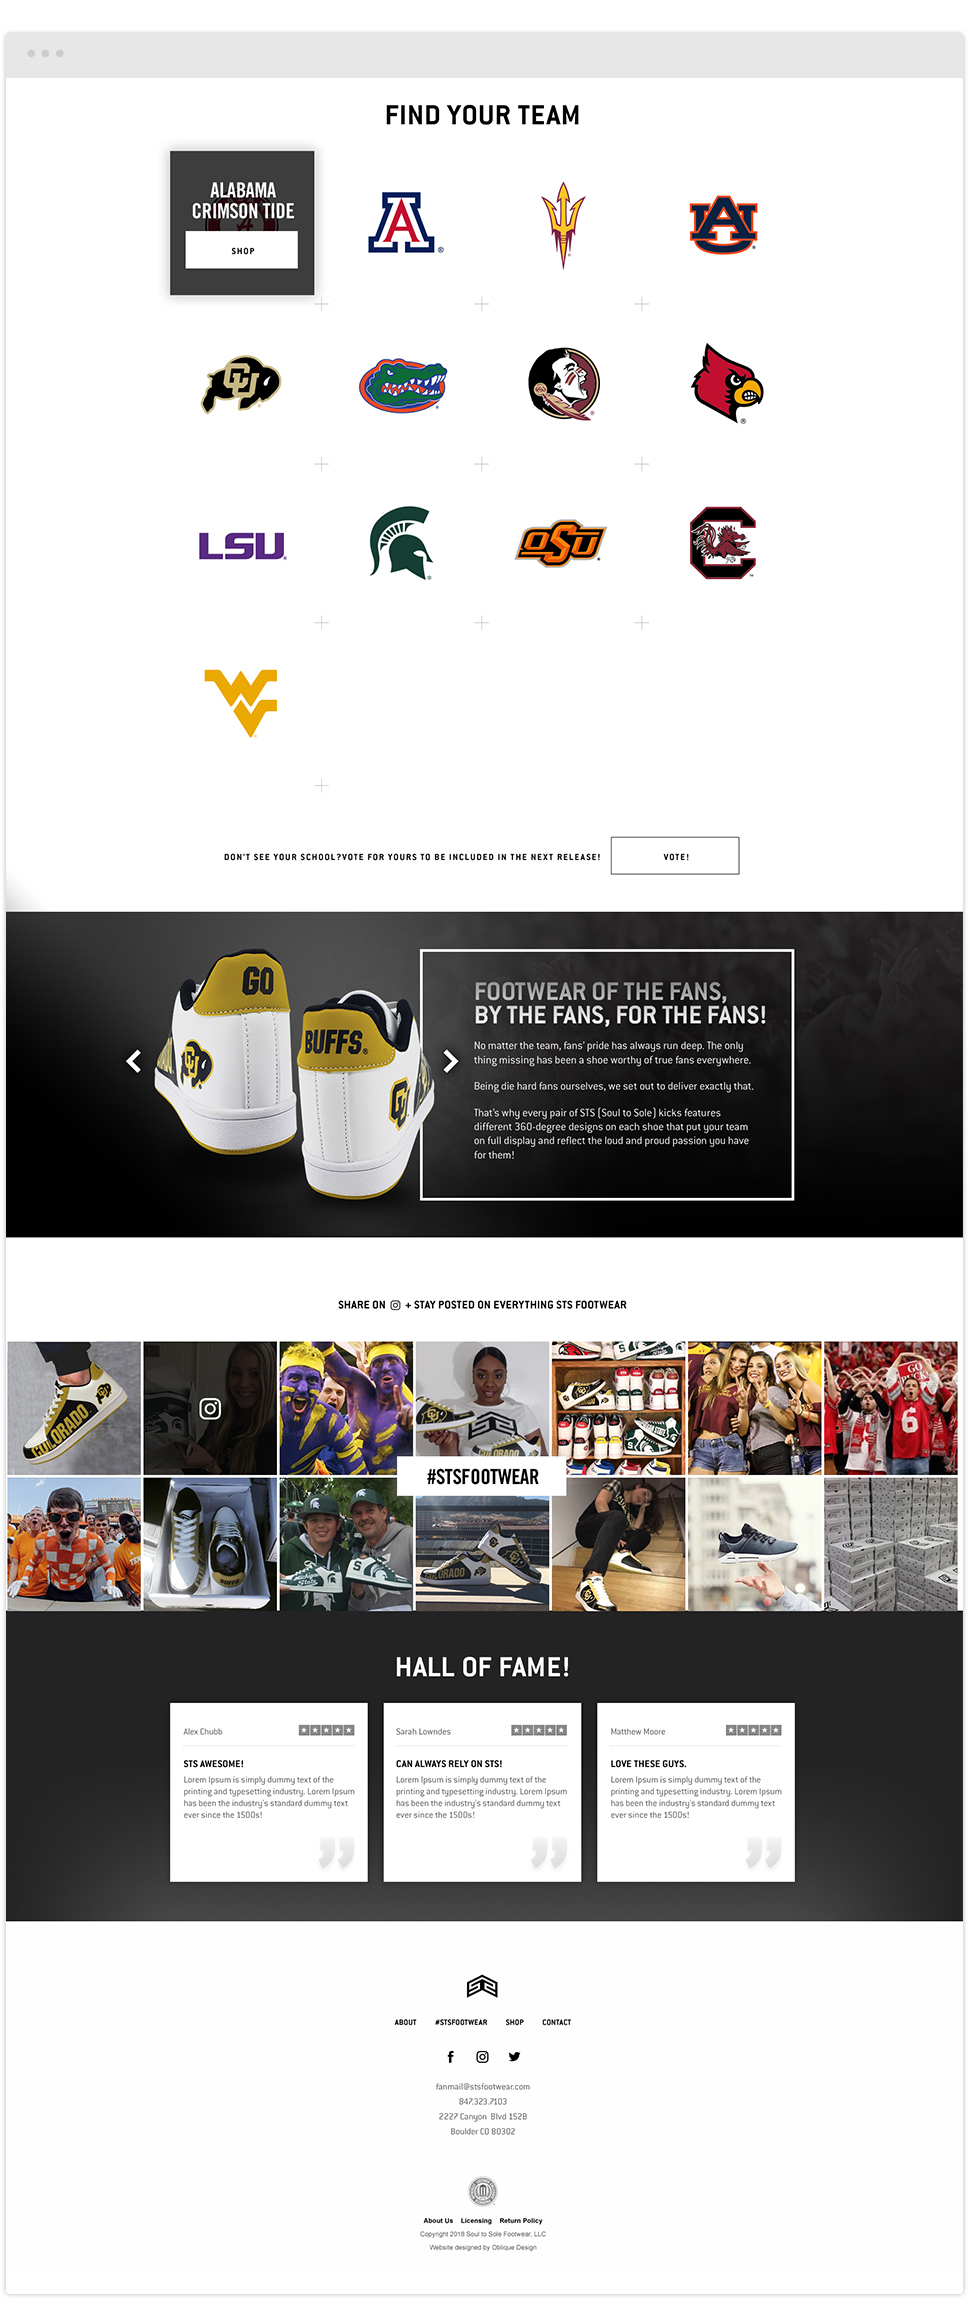 ncaa teams with branded shoes by sts footwear